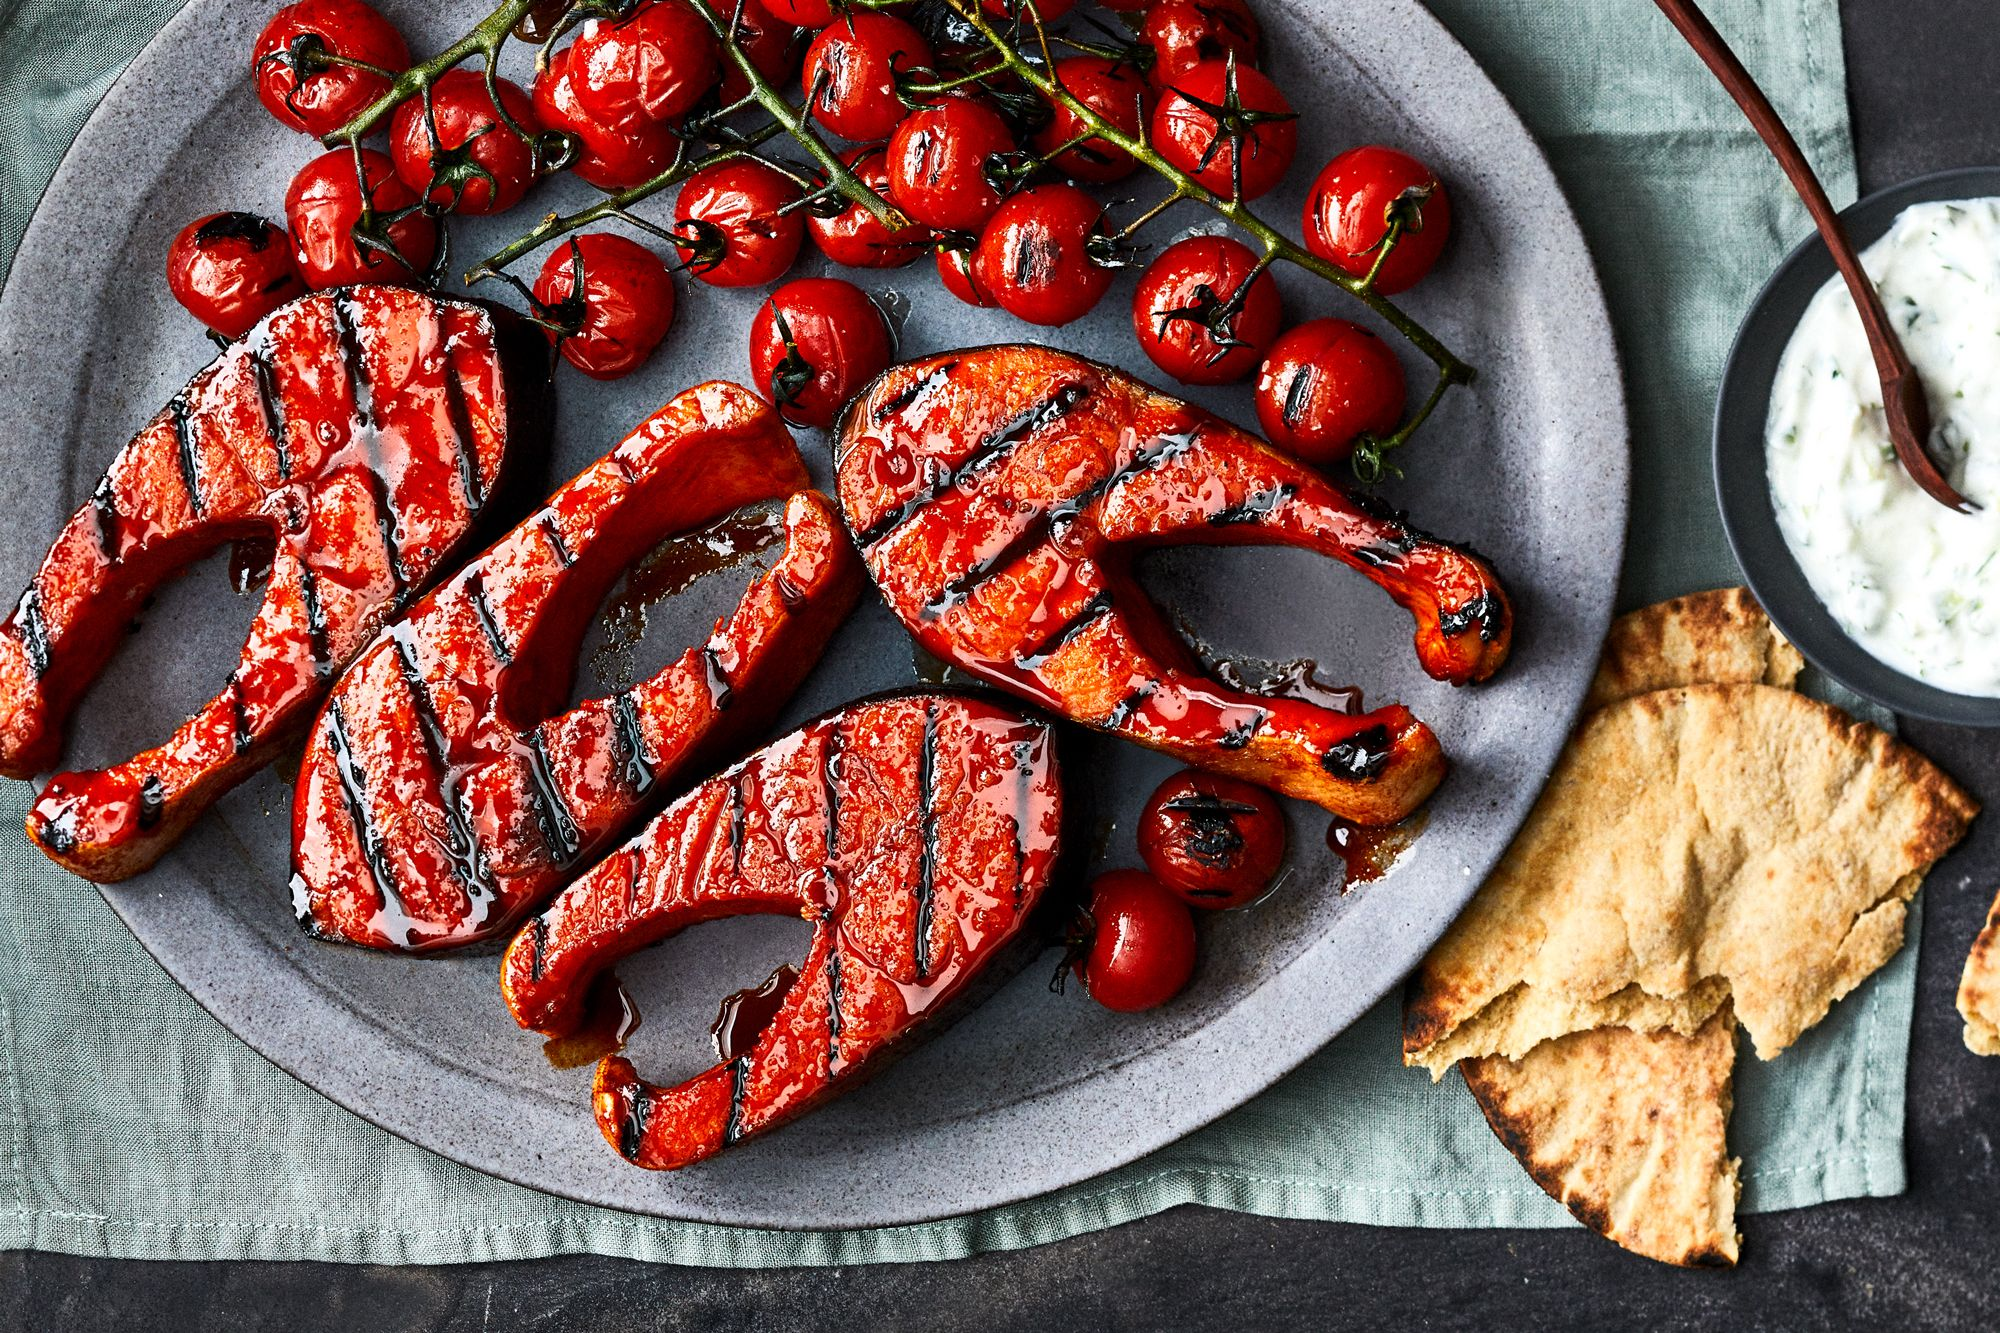 31 Recipes To Make In May In 2020 Salmon Steak Grilled Tomatoes Tzatziki Recipes